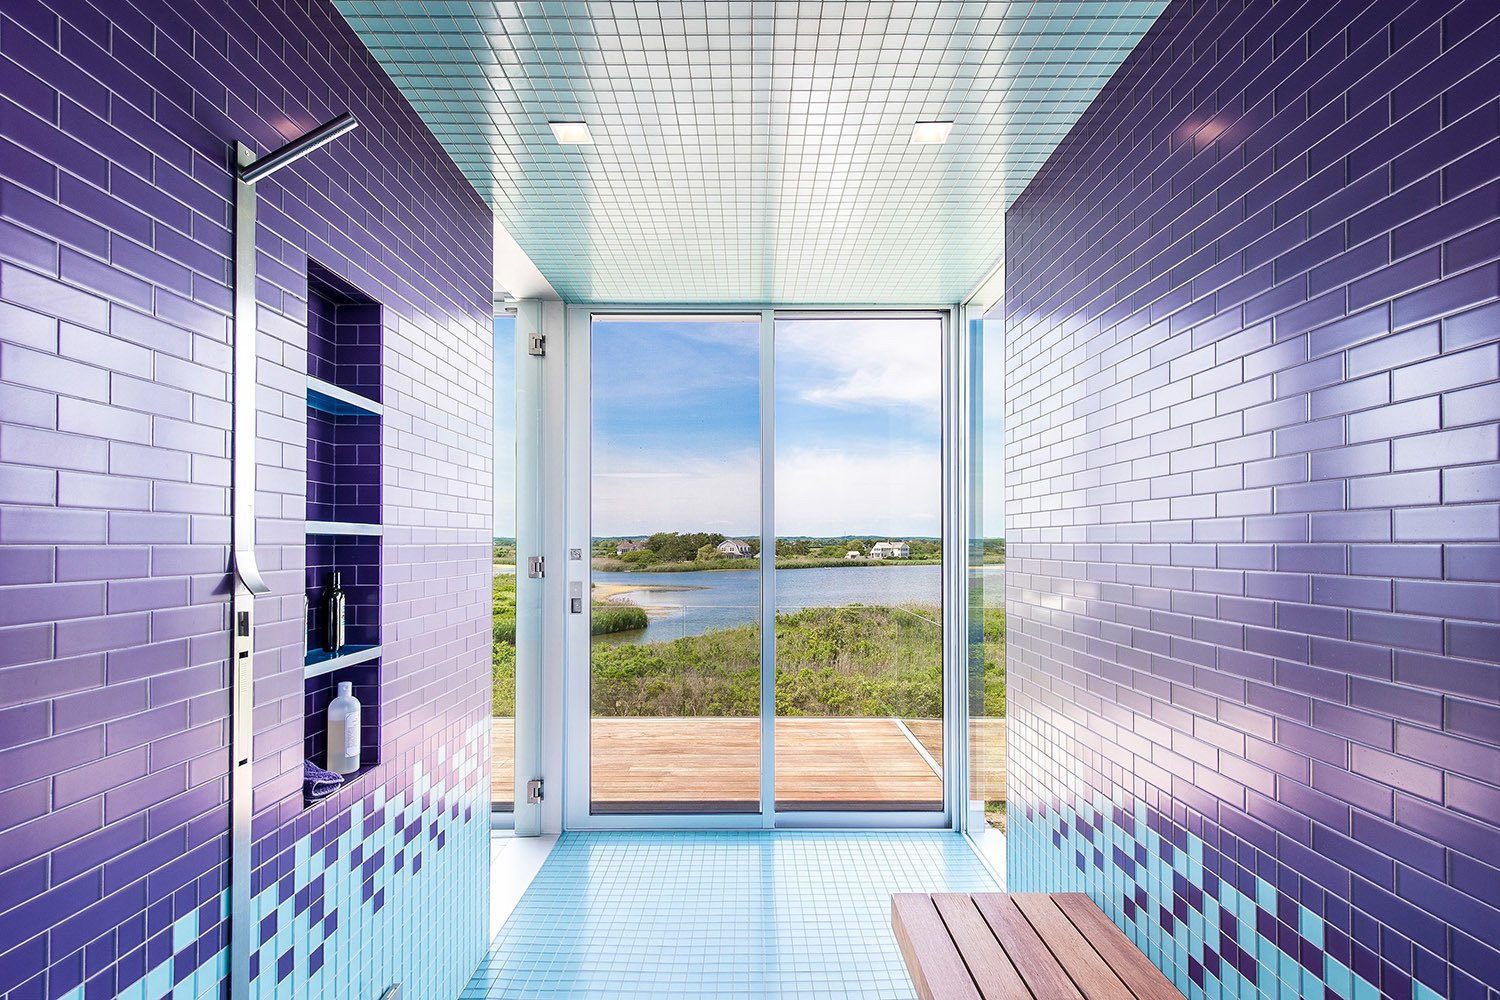 Bath Room, Ceramic Tile Wall, Ceramic Tile Floor, Ceiling Lighting, and Open Shower Consider this lively bathroom that sits within a recently completed waterfront home in Bridgehampton, New York. Situated on two-and-a-half acres of land with 360-degree views of the nearby bay and ocean, it's covered with brightly colored floor-to-ceiling tiles that reflect the shades of the neighboring water. One step through the sliding glass doors and you'll find yourself on an open terrace.  Photo 15 of 20 in 20 Bathrooms With Transformative Tiles from One of These Ultra-Modern Bathrooms Could Be the Escape of Your Dreams